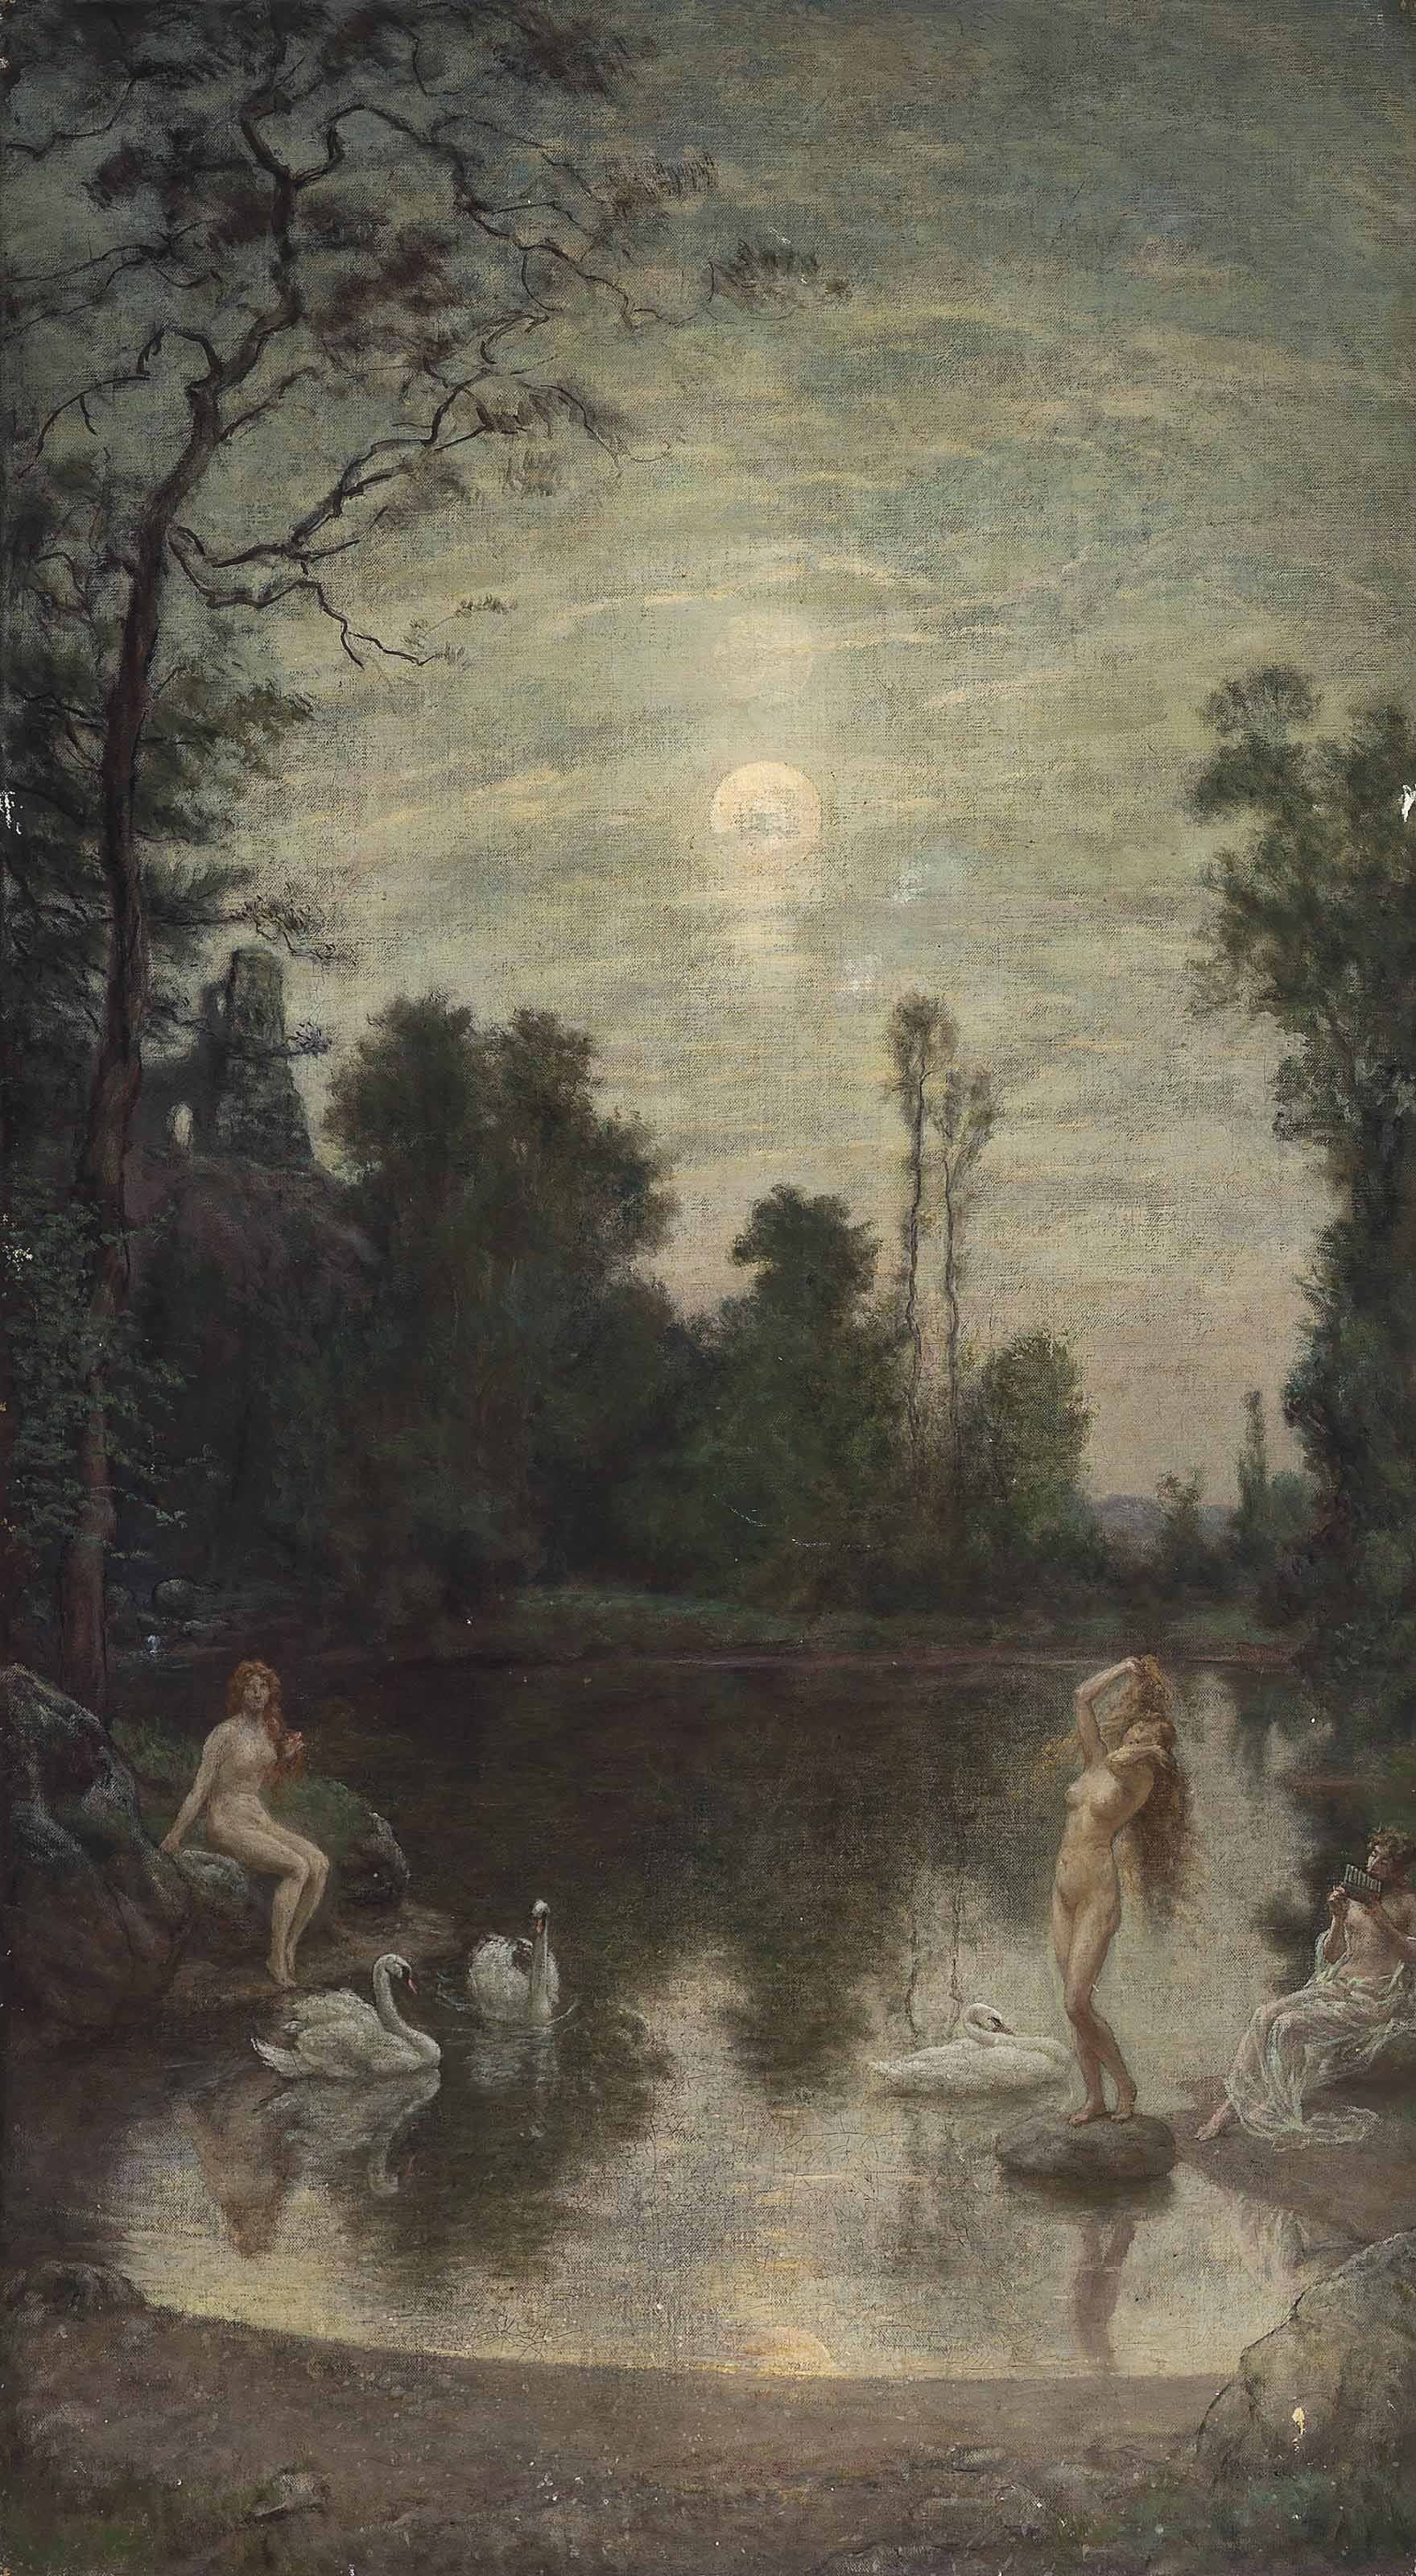 The three beauties by moonlight